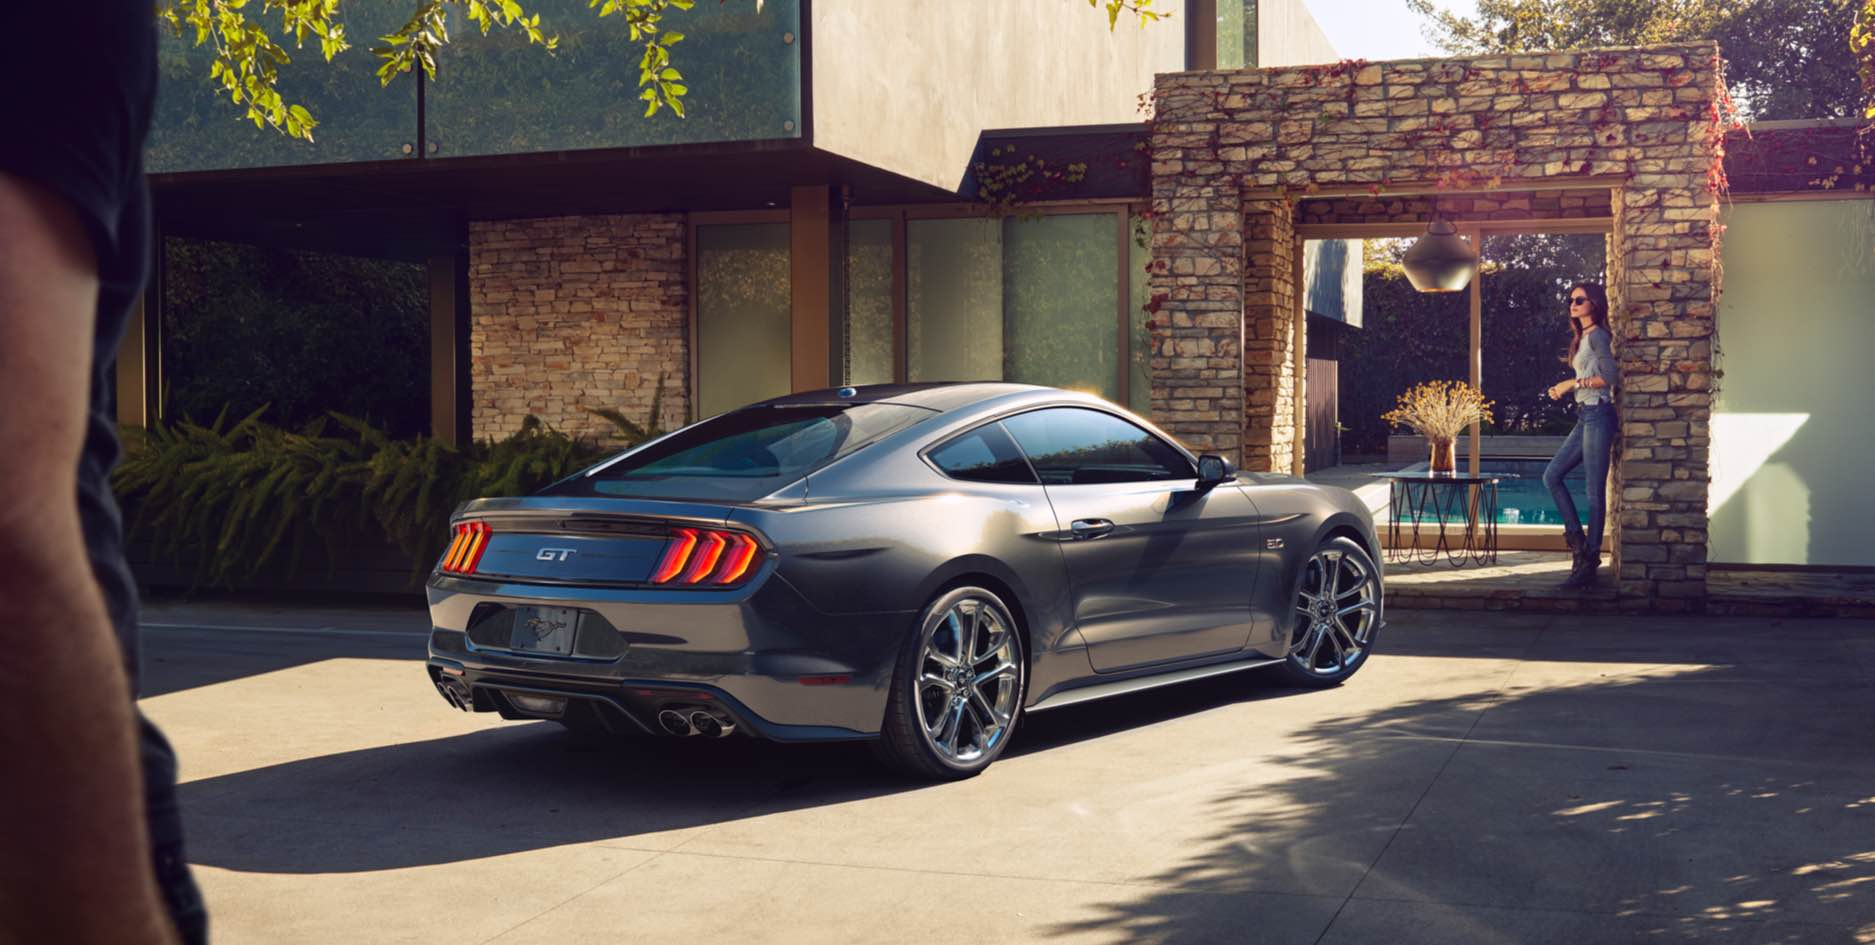 2018 Mustang Gallery 20 Santa Monica Ford Lincoln | New Ford dealership in Santa Monica, CA 90404